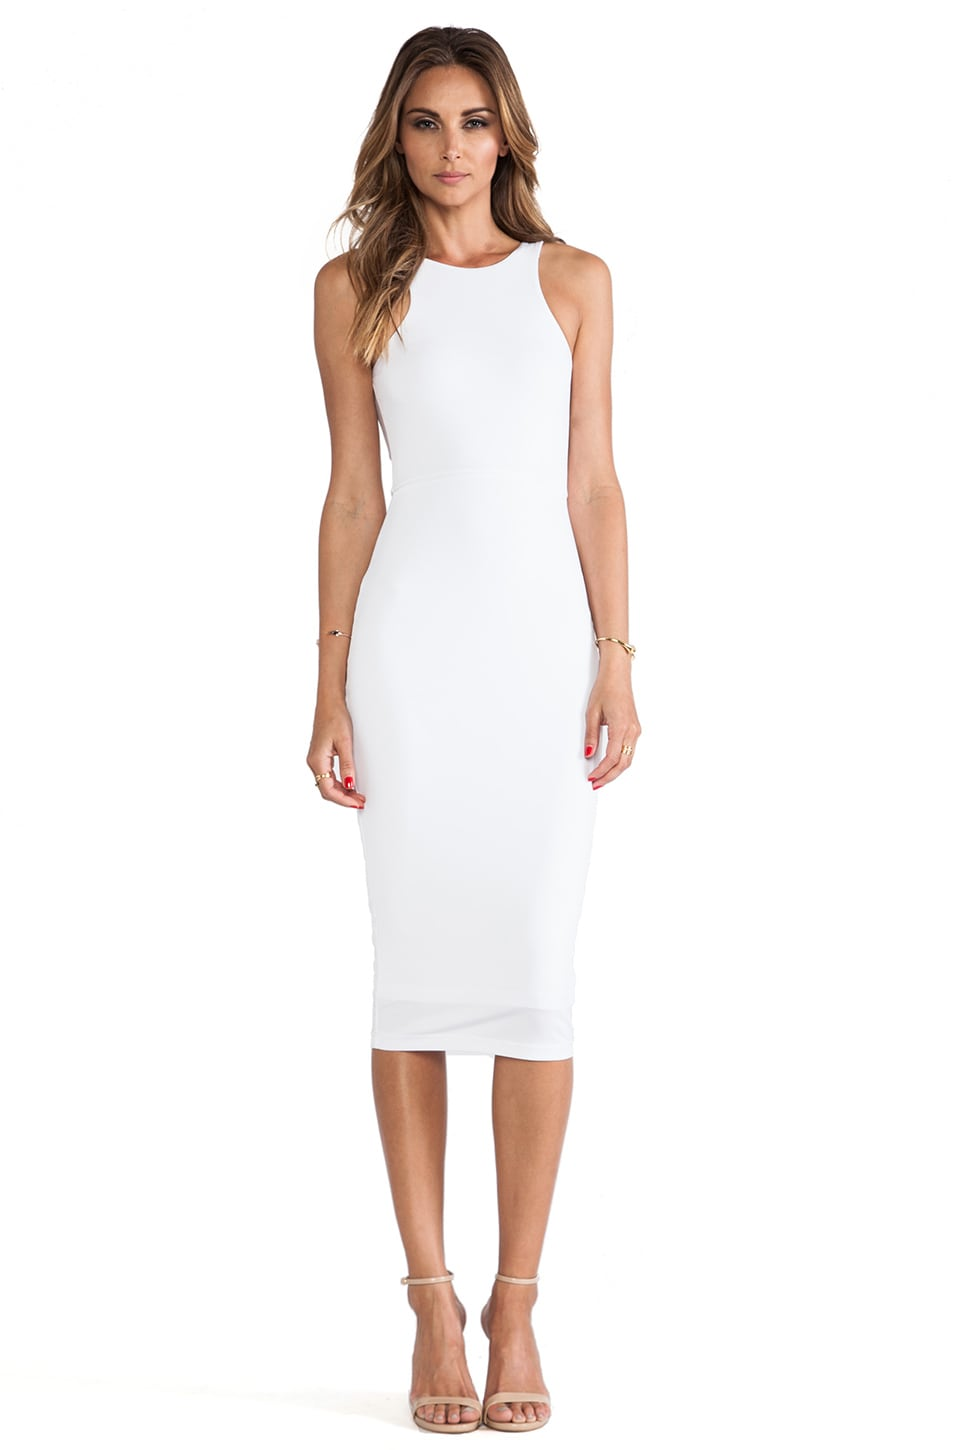 Nookie Dolce Vita Bodycon Dress in White